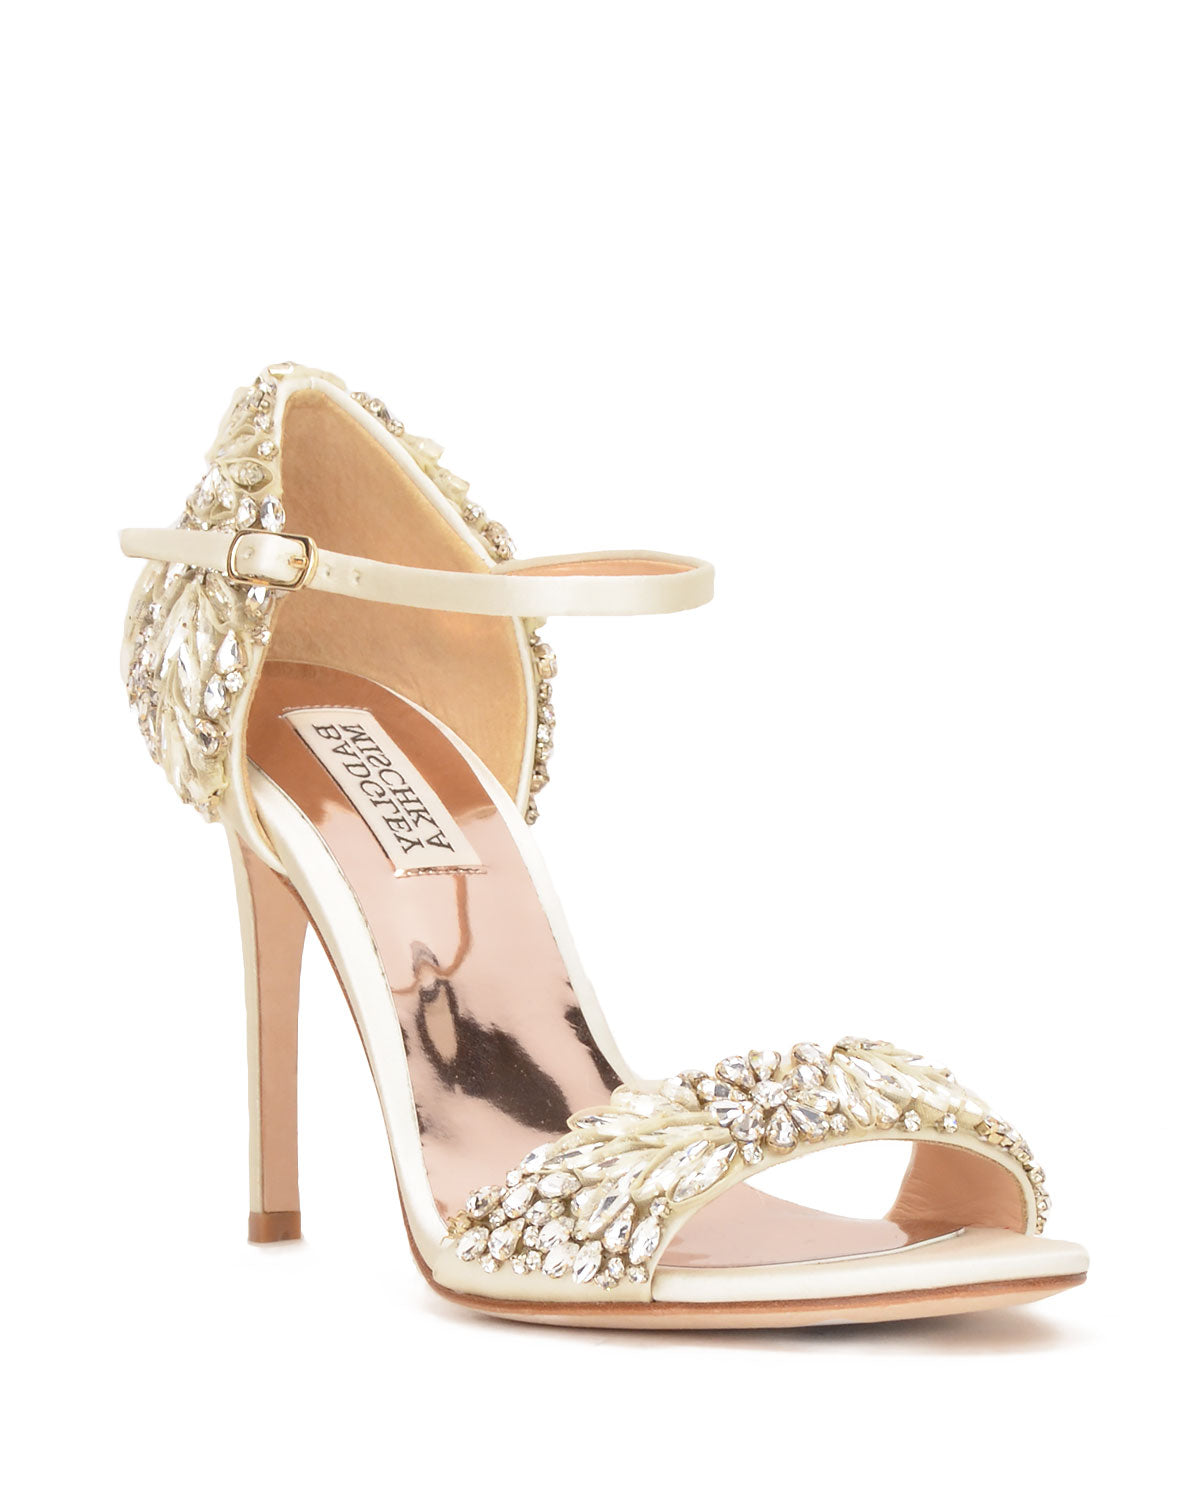 166b11e41c6 Badgley Mischka Sydney - Bridal Shoes - Tampa - Ivory ...